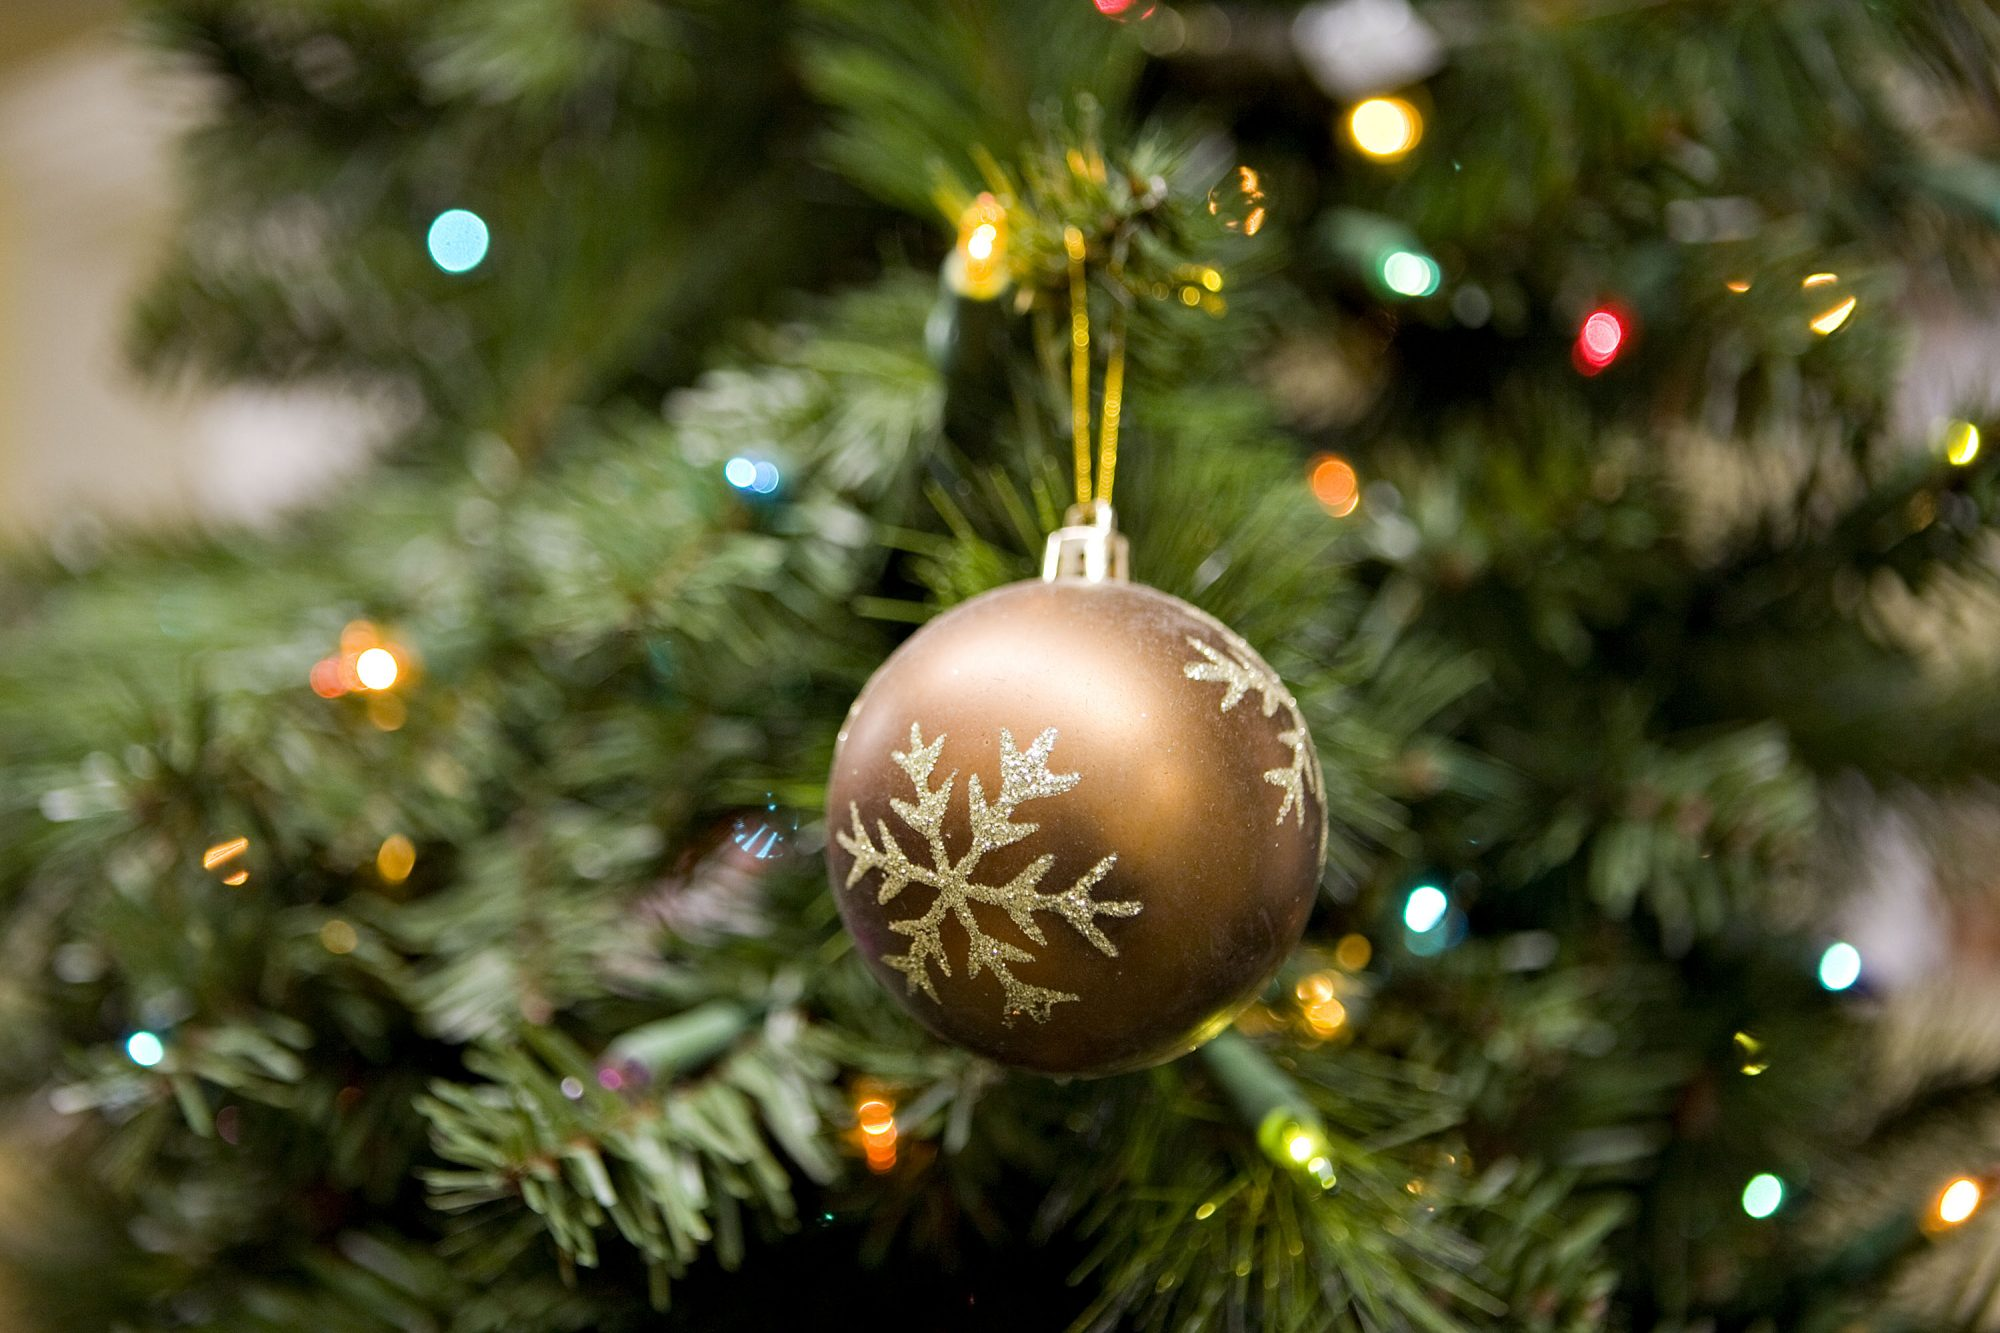 Ornament on Artificial Christmas Tree